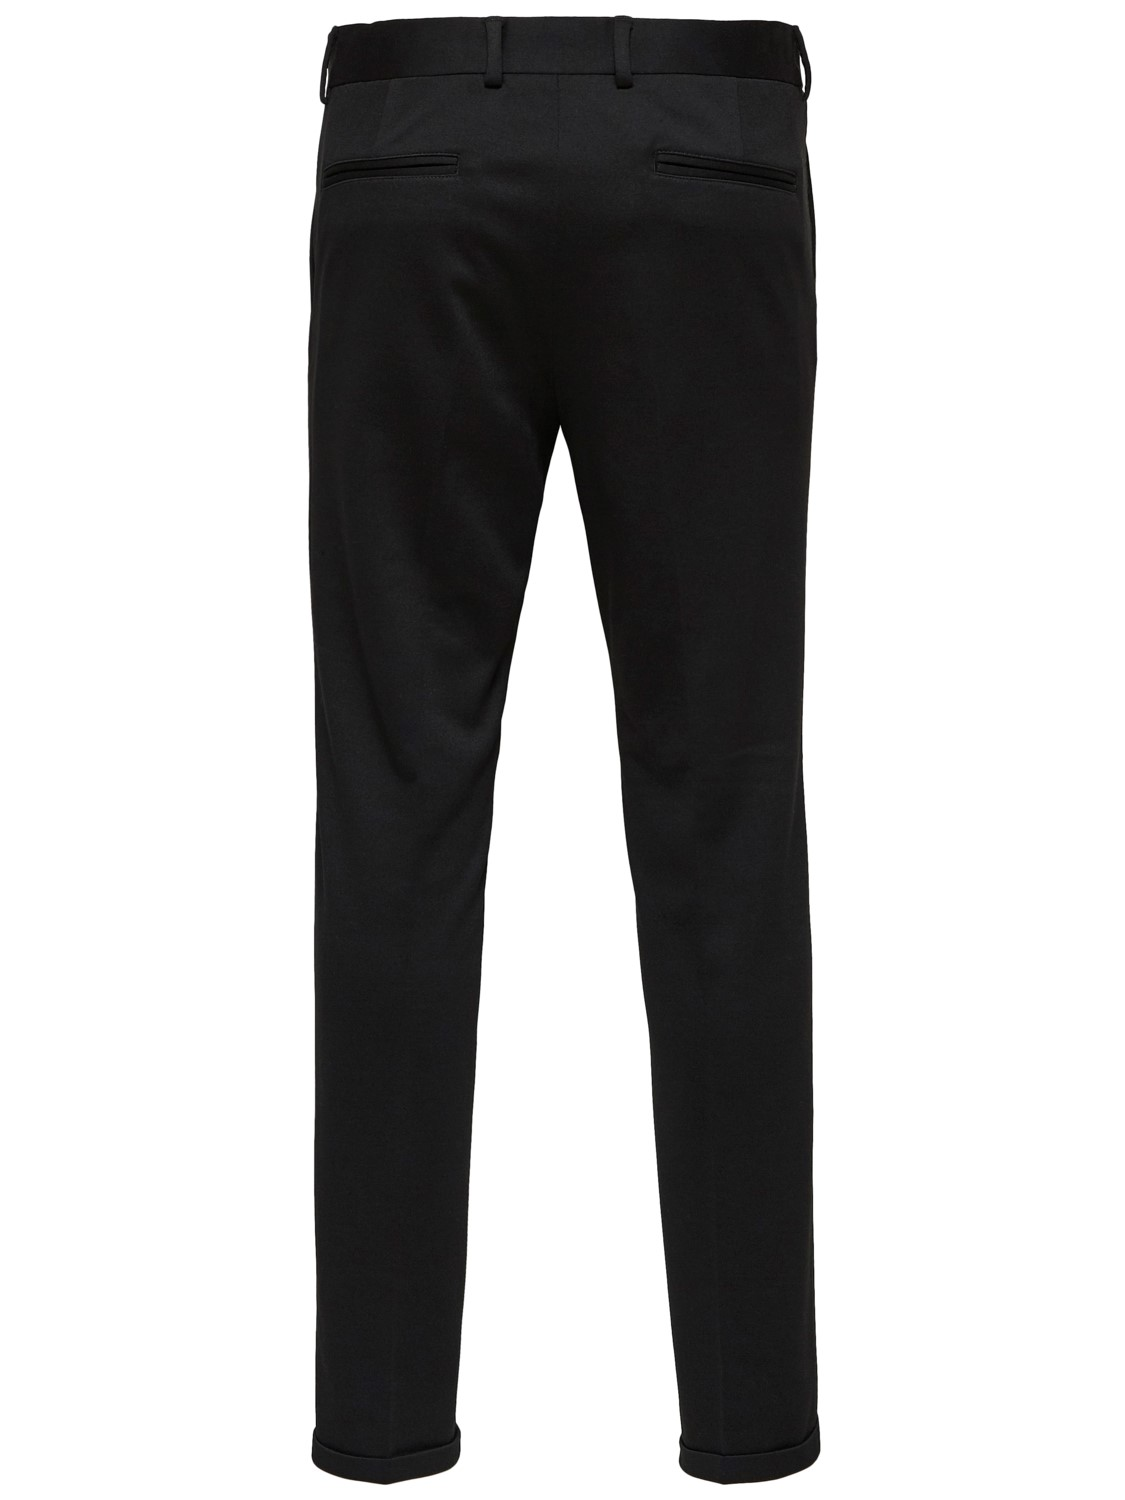 selected-herren-hose-slhskinny-jersey-pants-skinny-fit